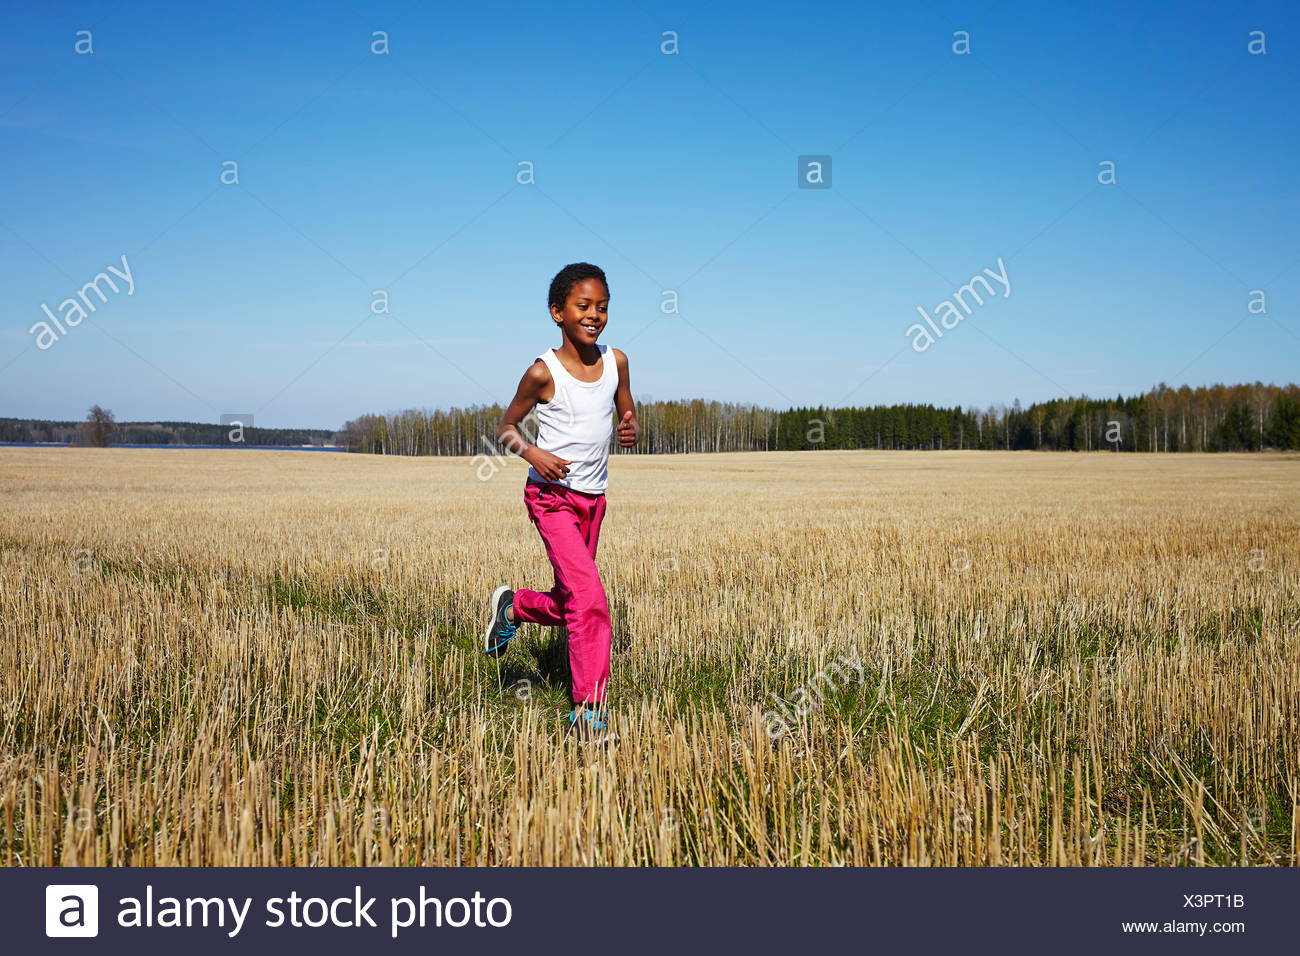 Sweden, Vastra Gotaland, Gullspang, Runnas, Boy (8-9) running in field Stock Photo